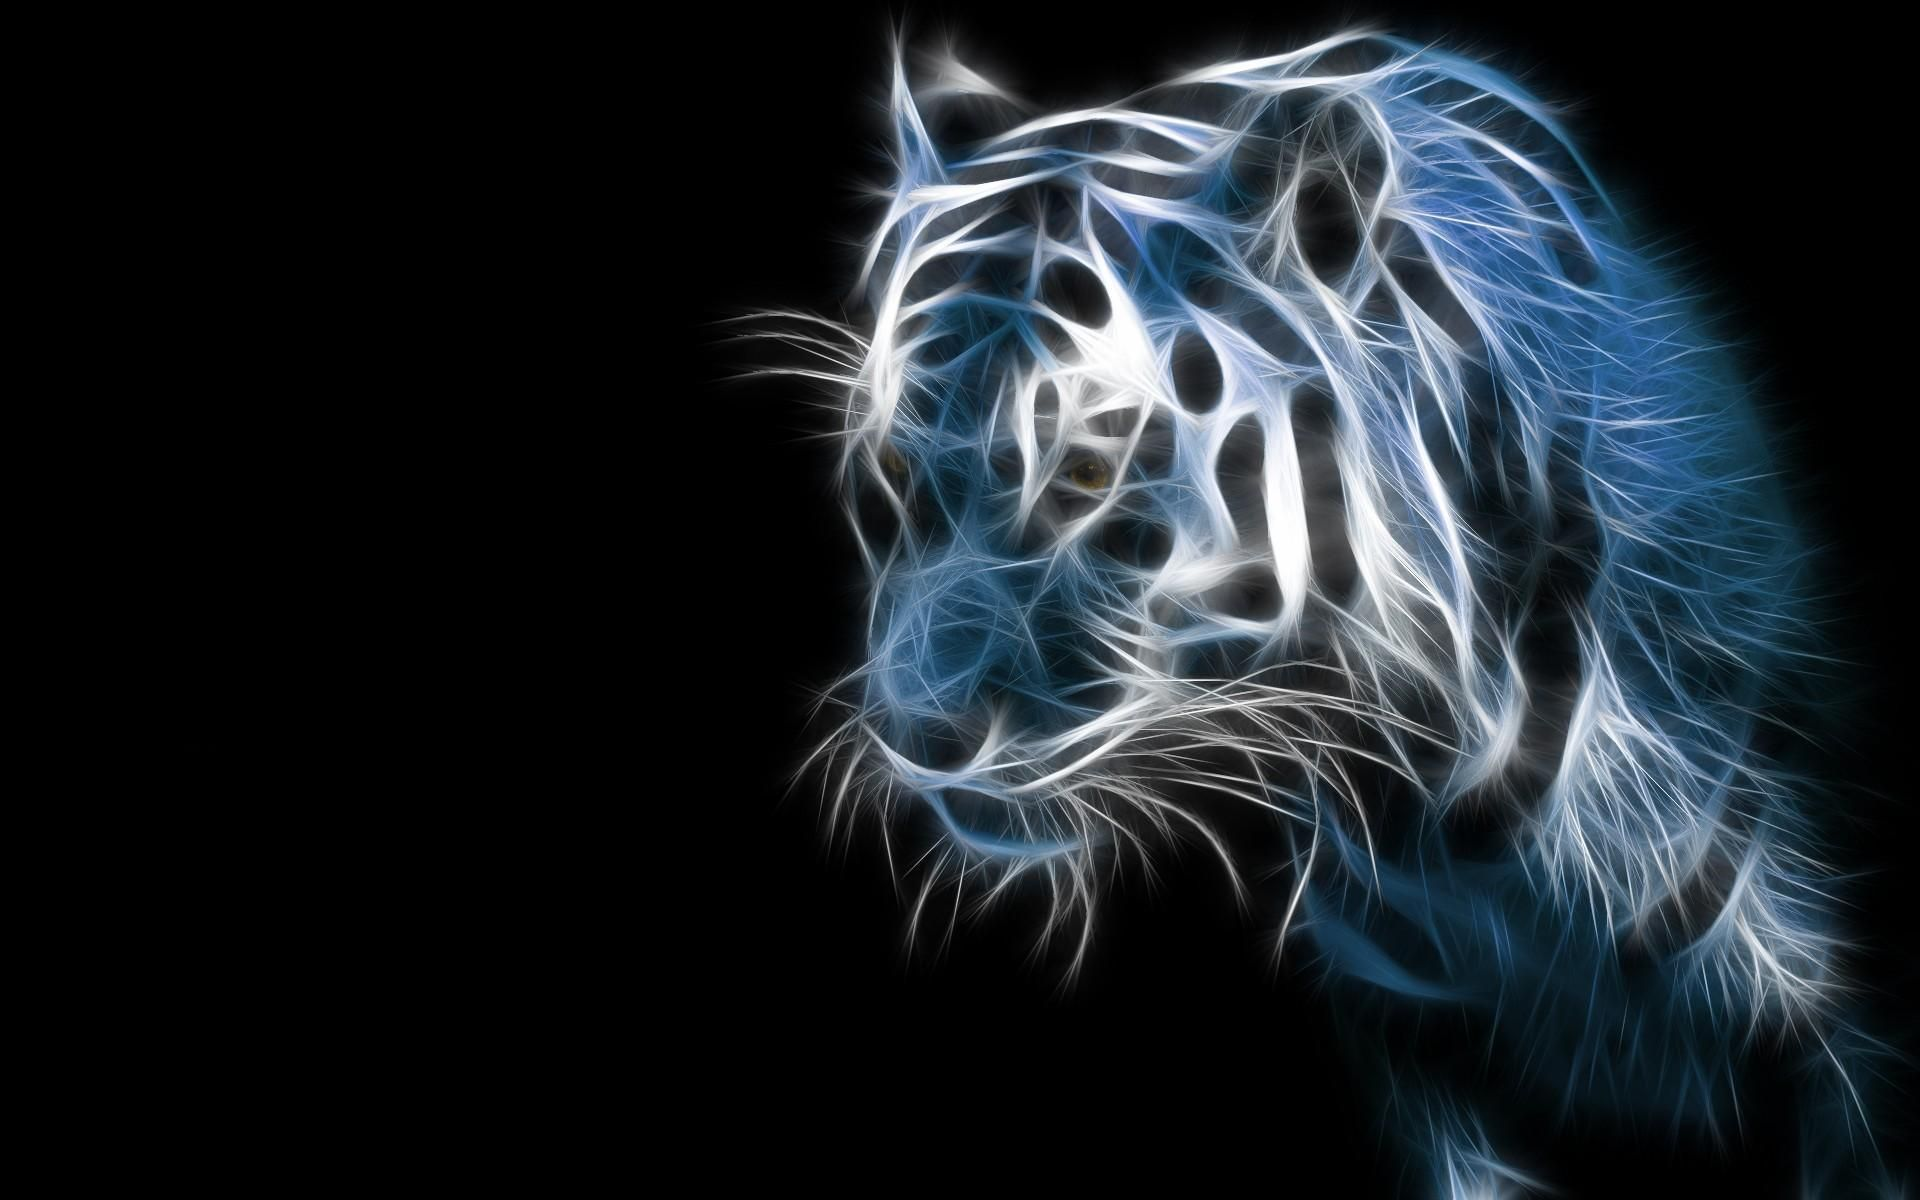 3d Leopard Wallpapers Hd The Cool Art Hd Wallpapers For Laptop